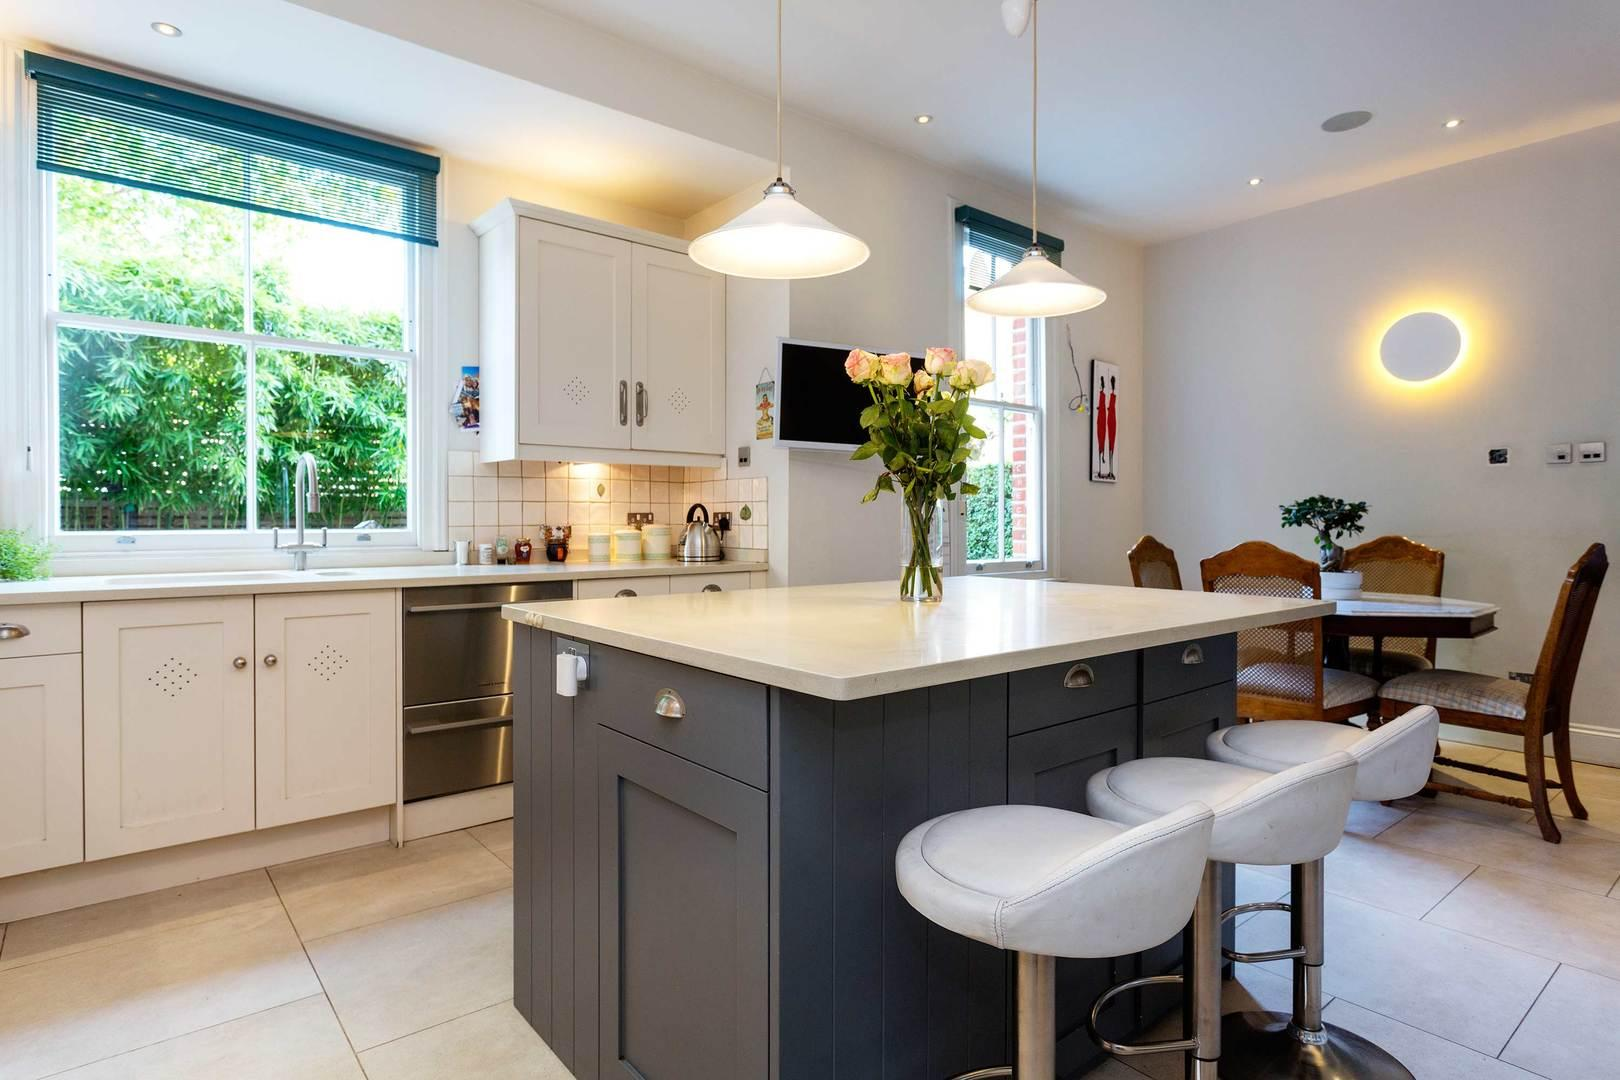 Property Image 2 - Attractive Notting Hill Family Home with Large Garden